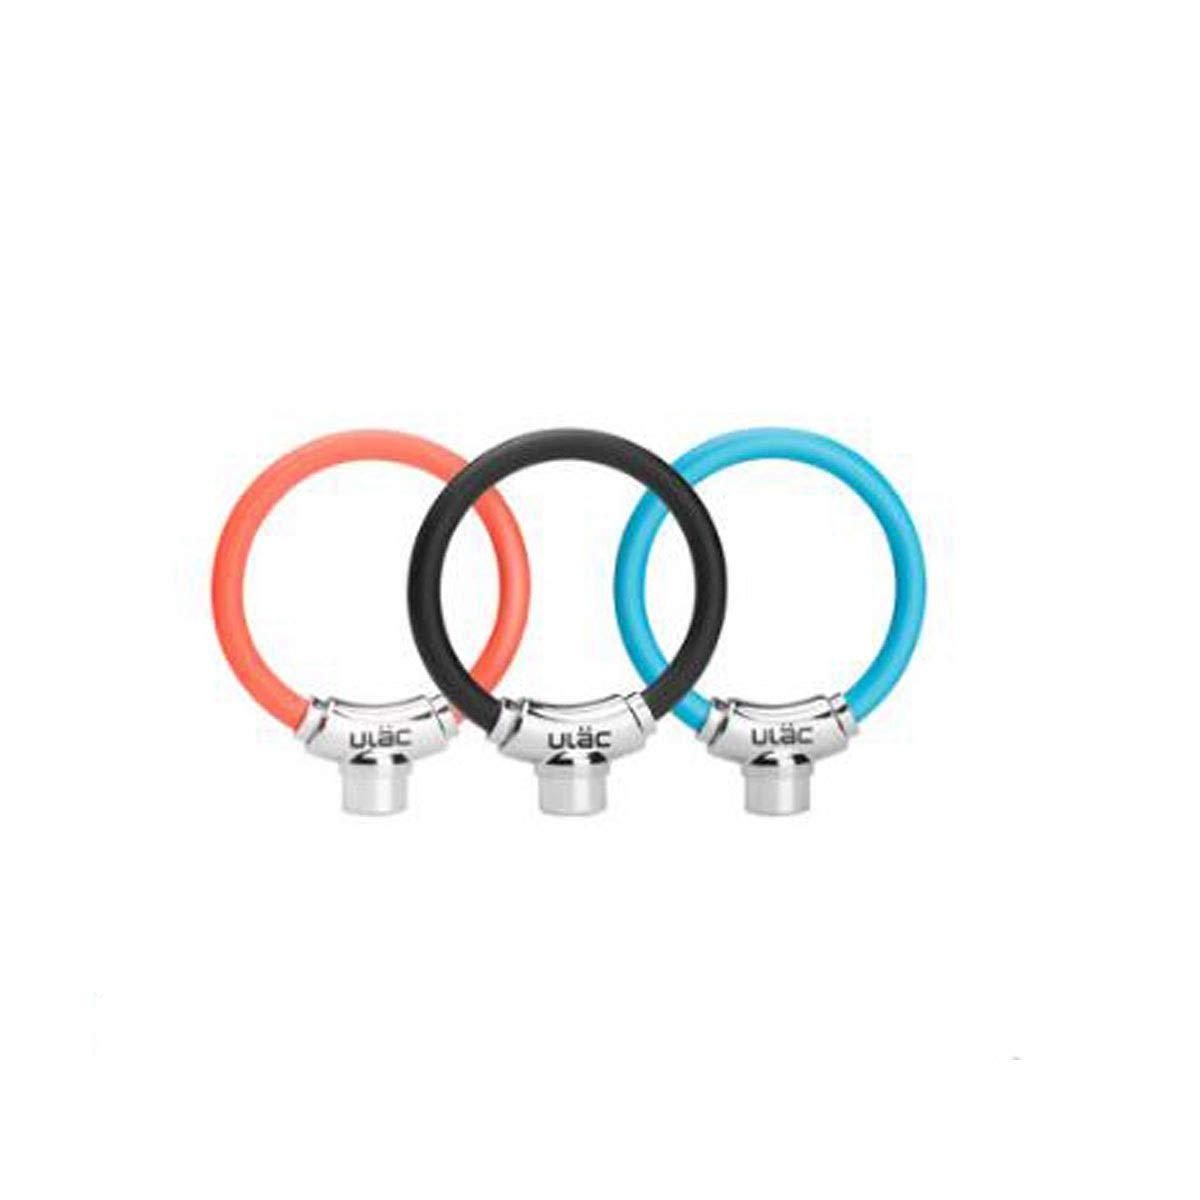 8haowenju Bicycle Cable Lock, Blade Lock Cylinder, Large Locking Space, Safety Bicycle Lock, Size: 3.63.65.2 Inches, Color: Black, Blue, Orange (Color : Black)